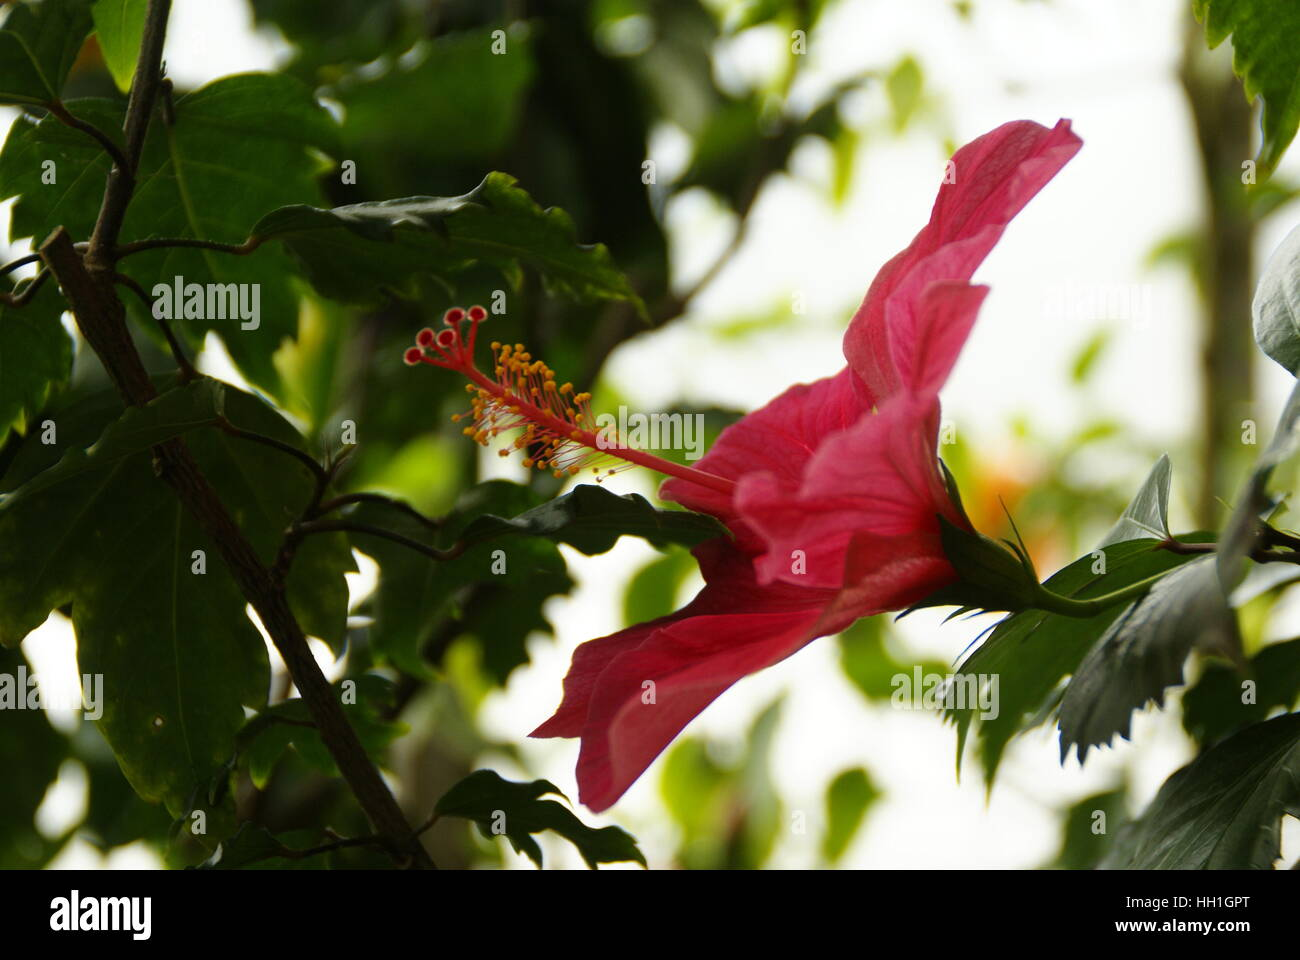 A hibiscus flower in a botanical garden. - Stock Image